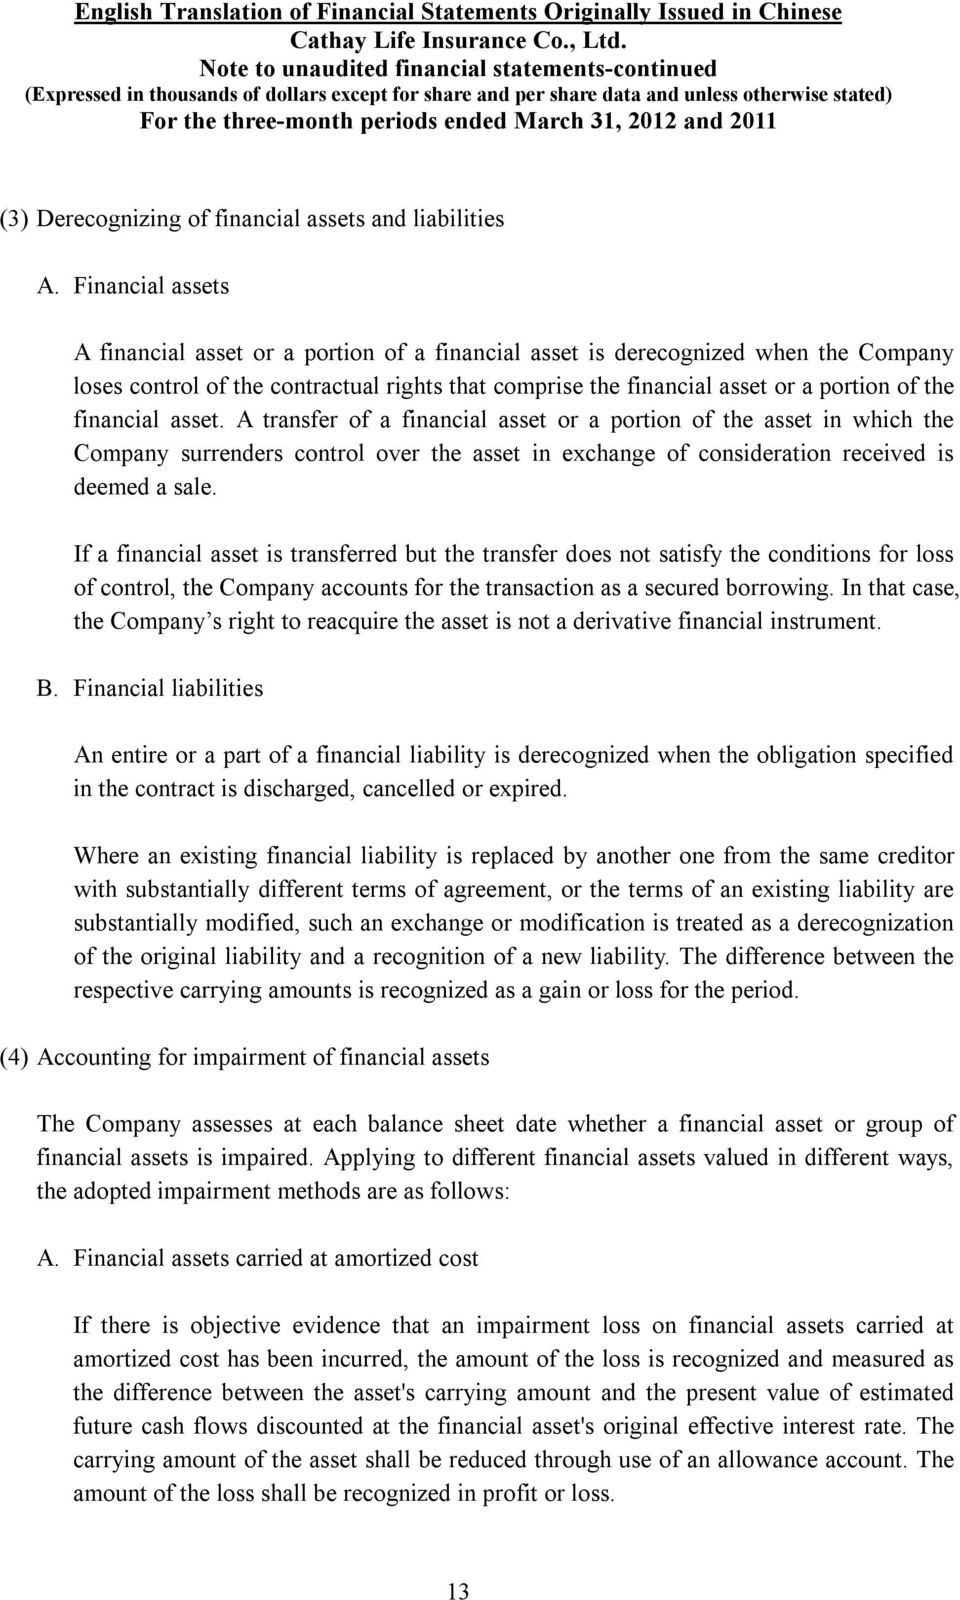 financial asset. A transfer of a financial asset or a portion of the asset in which the Company surrenders control over the asset in exchange of consideration received is deemed a sale.